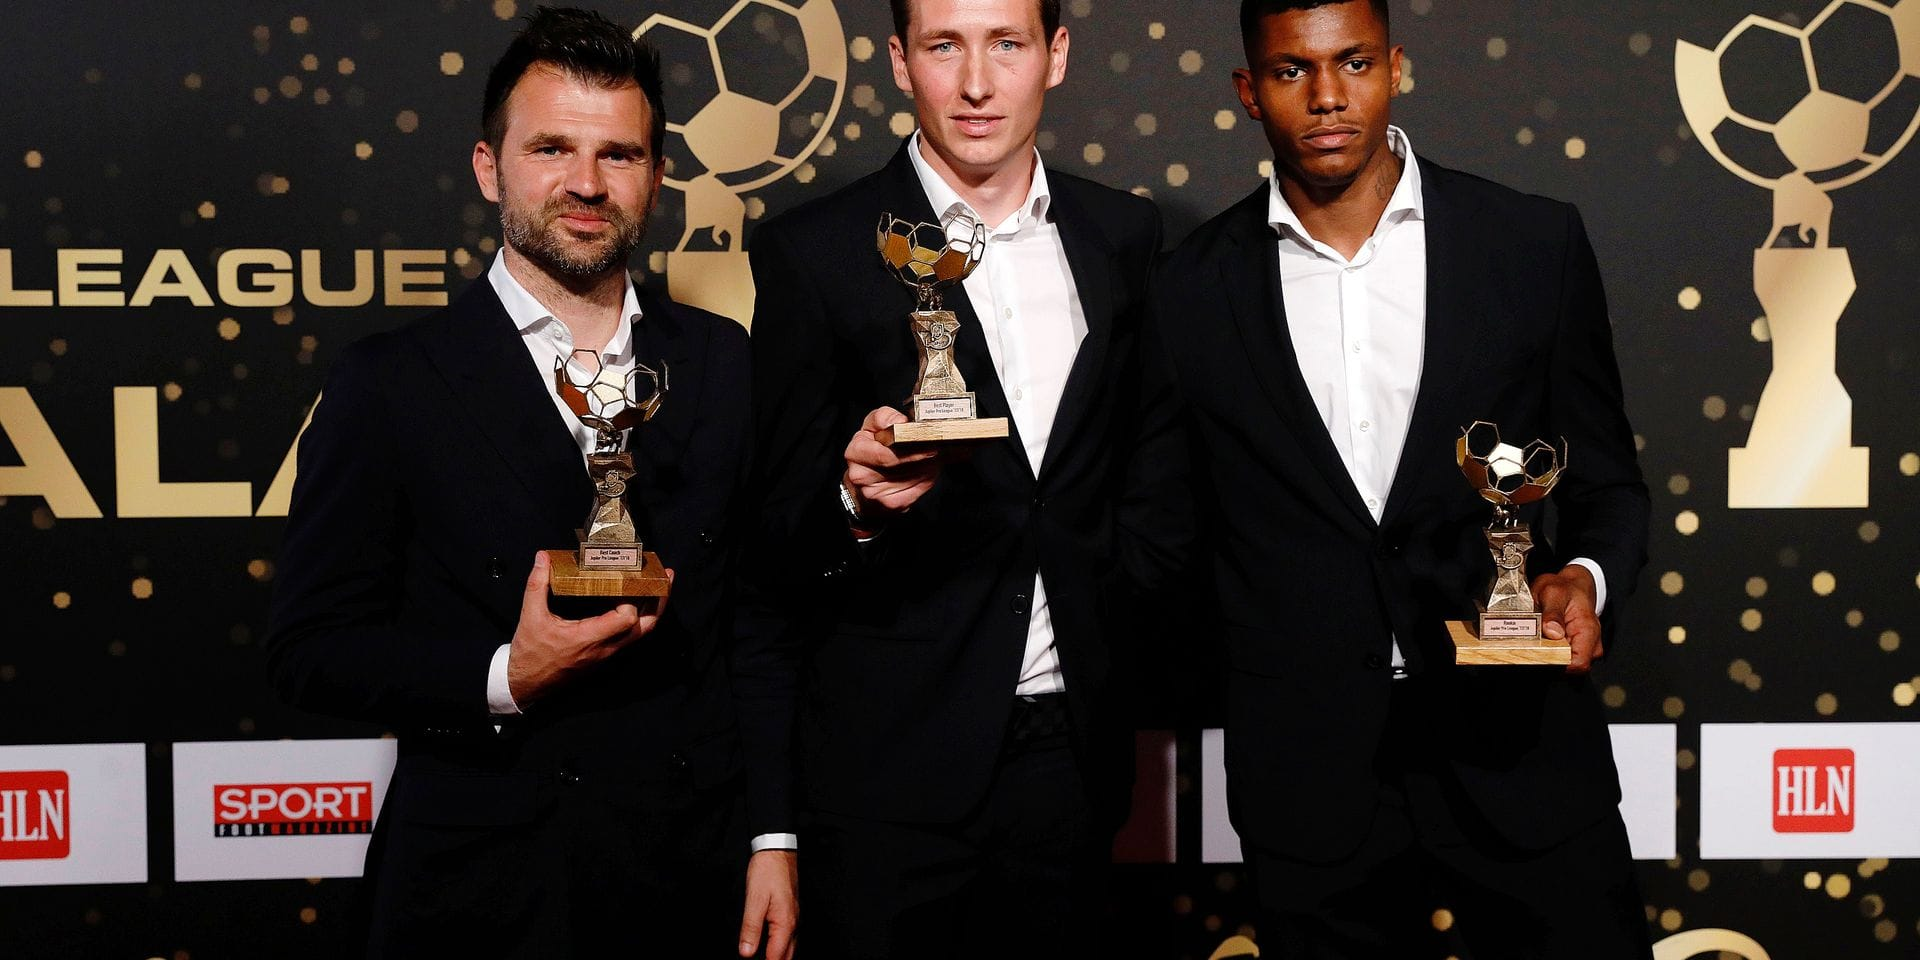 Best Coach winner Club Brugge's head coach Ivan Leko, Best Player winner Club's Hans Vanaken and Best Rookie winner Club's Wesley Moraes pose with their trophies on the red carpet of the third edition of the Professional Soccer Player of the Year 2018 gala evening, Monday 14 May 2018, in Brussels. BELGA PHOTO THIERRY ROGE